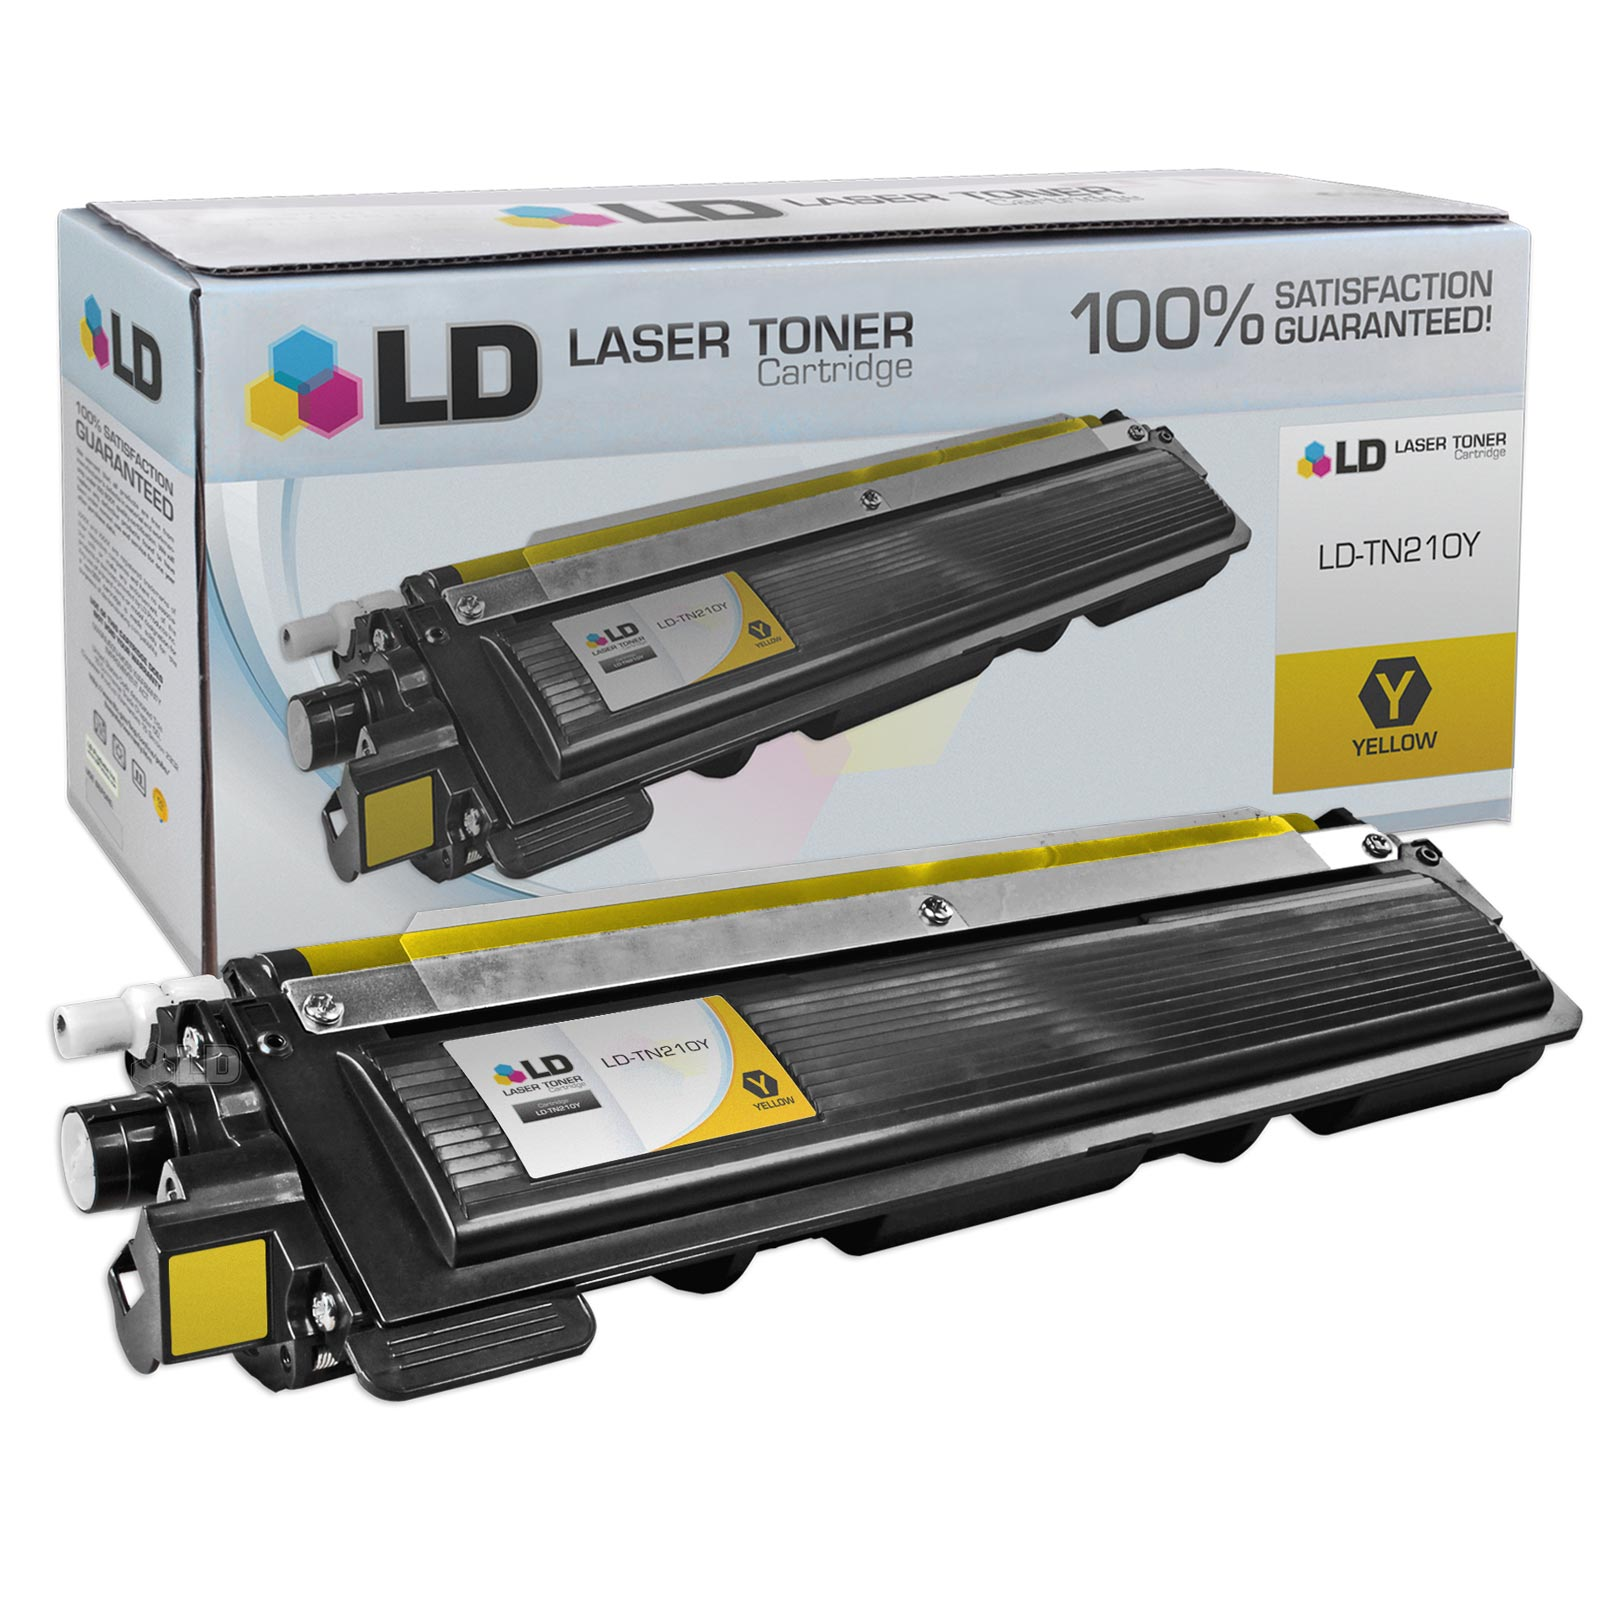 LD Brother Compatible TN-210 Laser Toner Cartridges: Black TN210BK, Cyan TN210C, Magenta TN210M, Yellow TN210Y